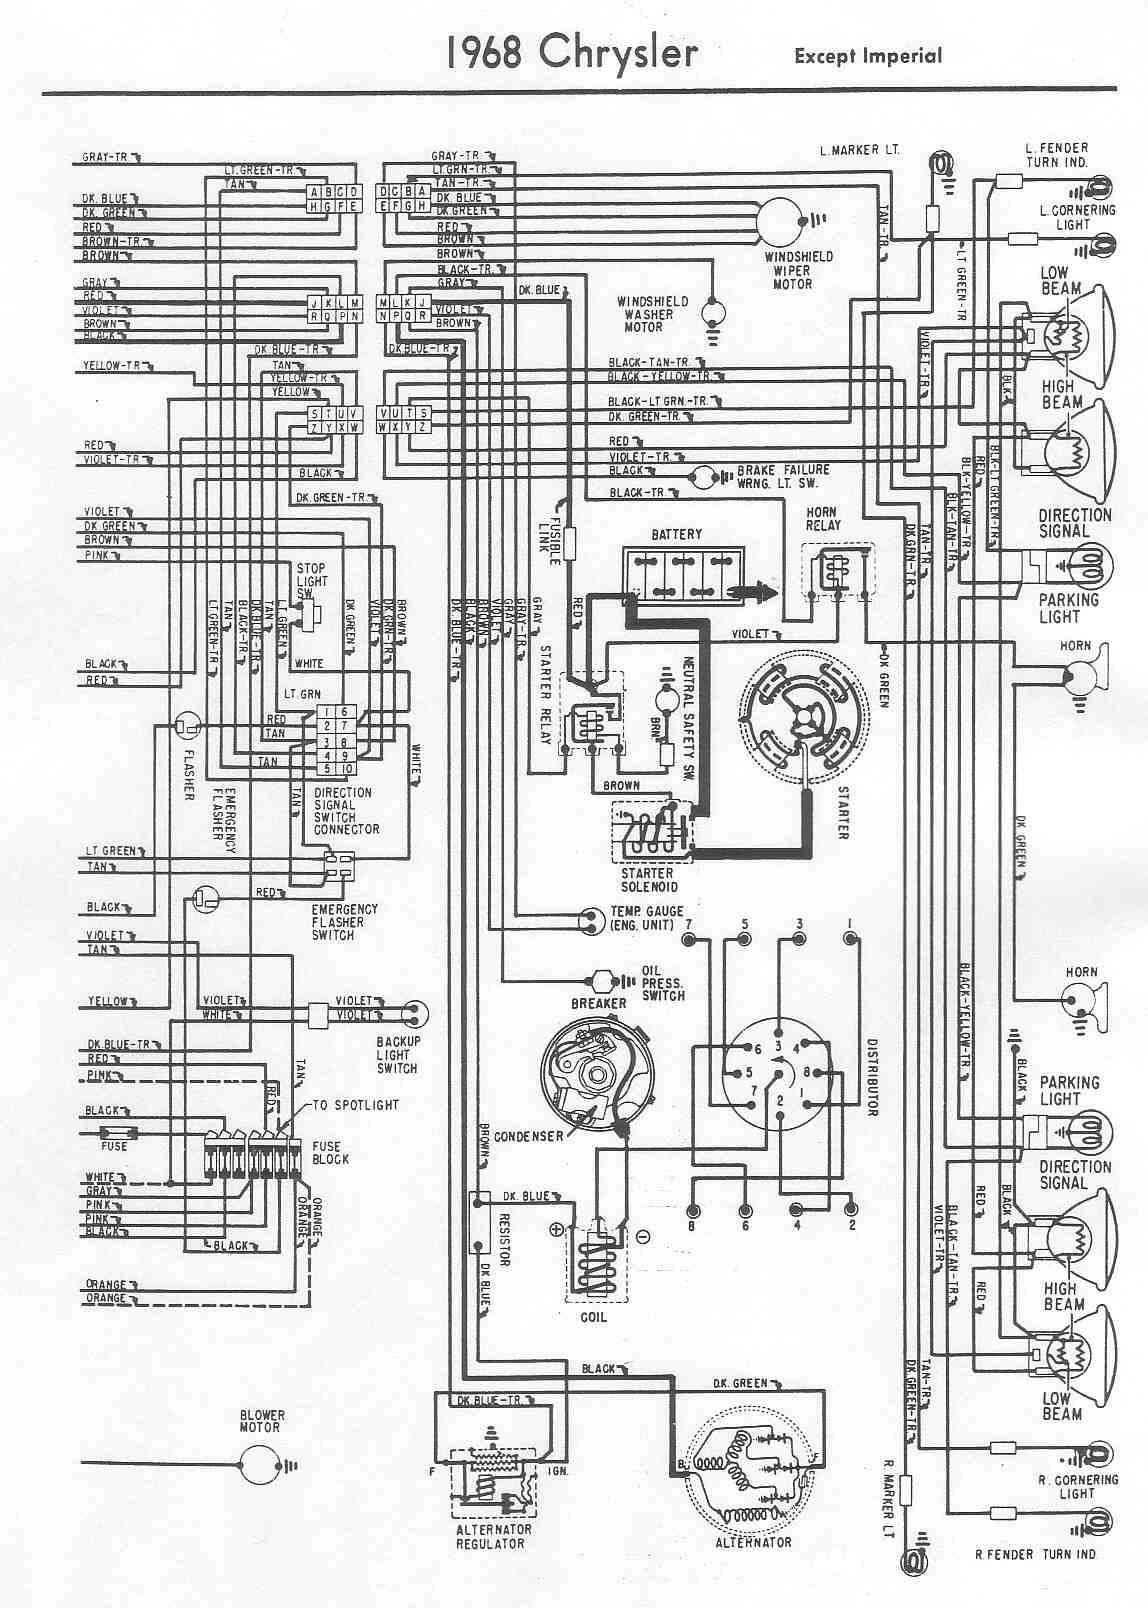 Mgb Wiring Diagram For Ignition On Smart Car Starter Wiring Diagram